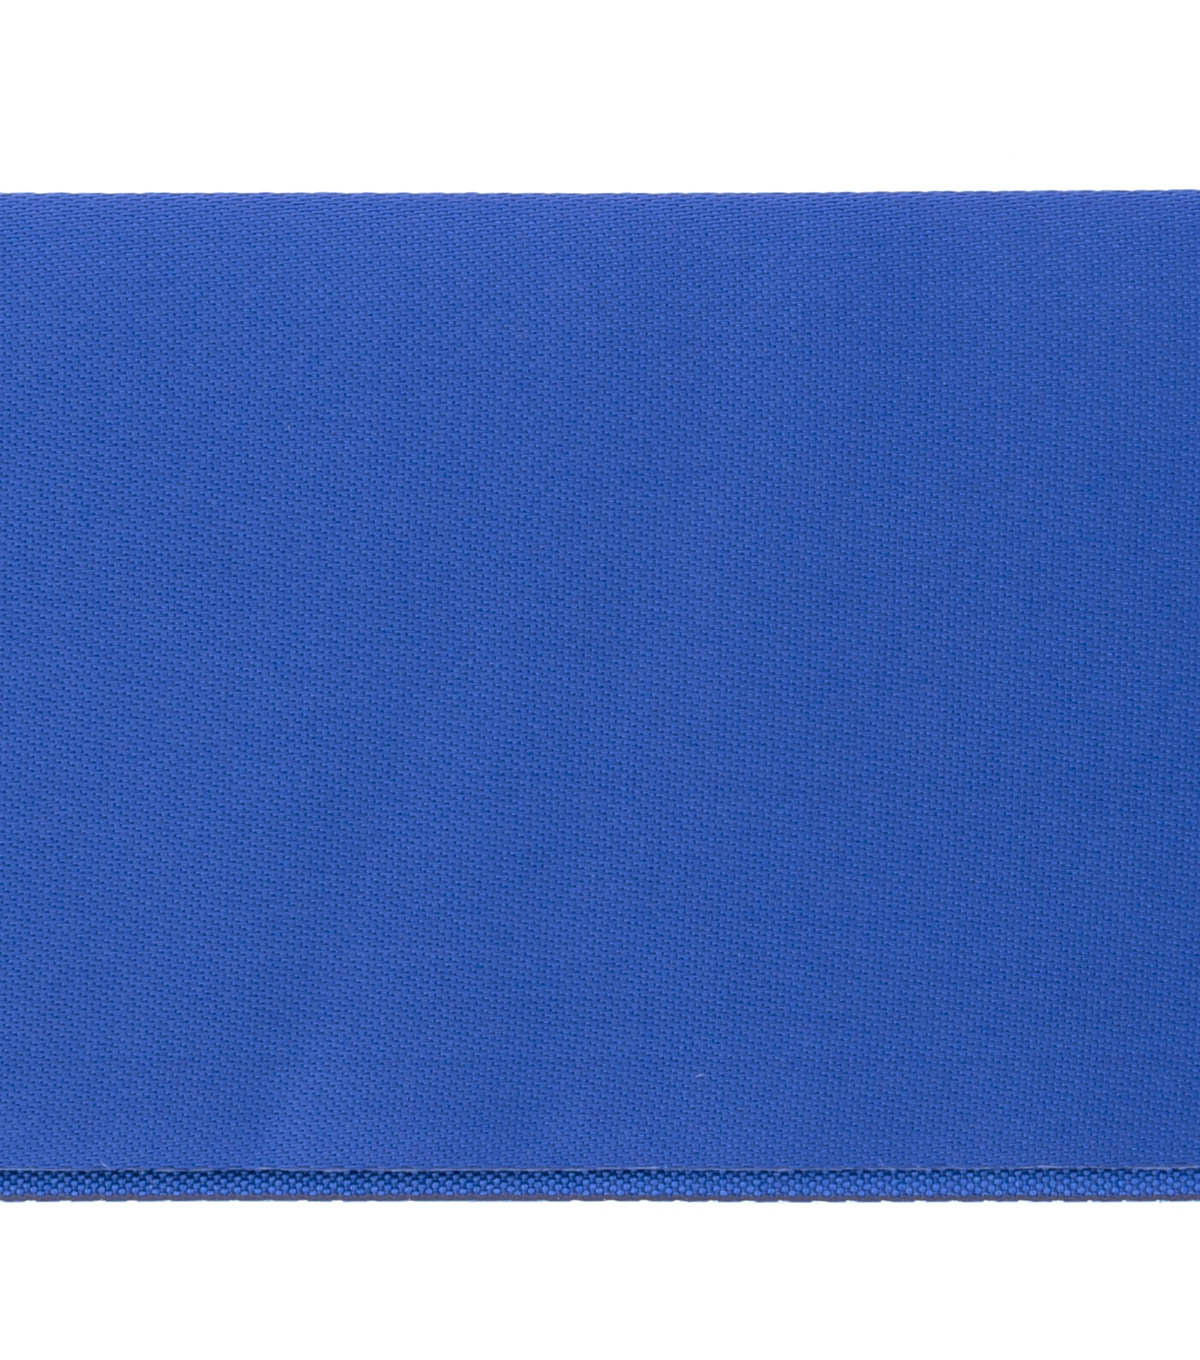 Wrights Satin Blanket Binding 2\u0027\u0027x4.75 yds-Yale Blue